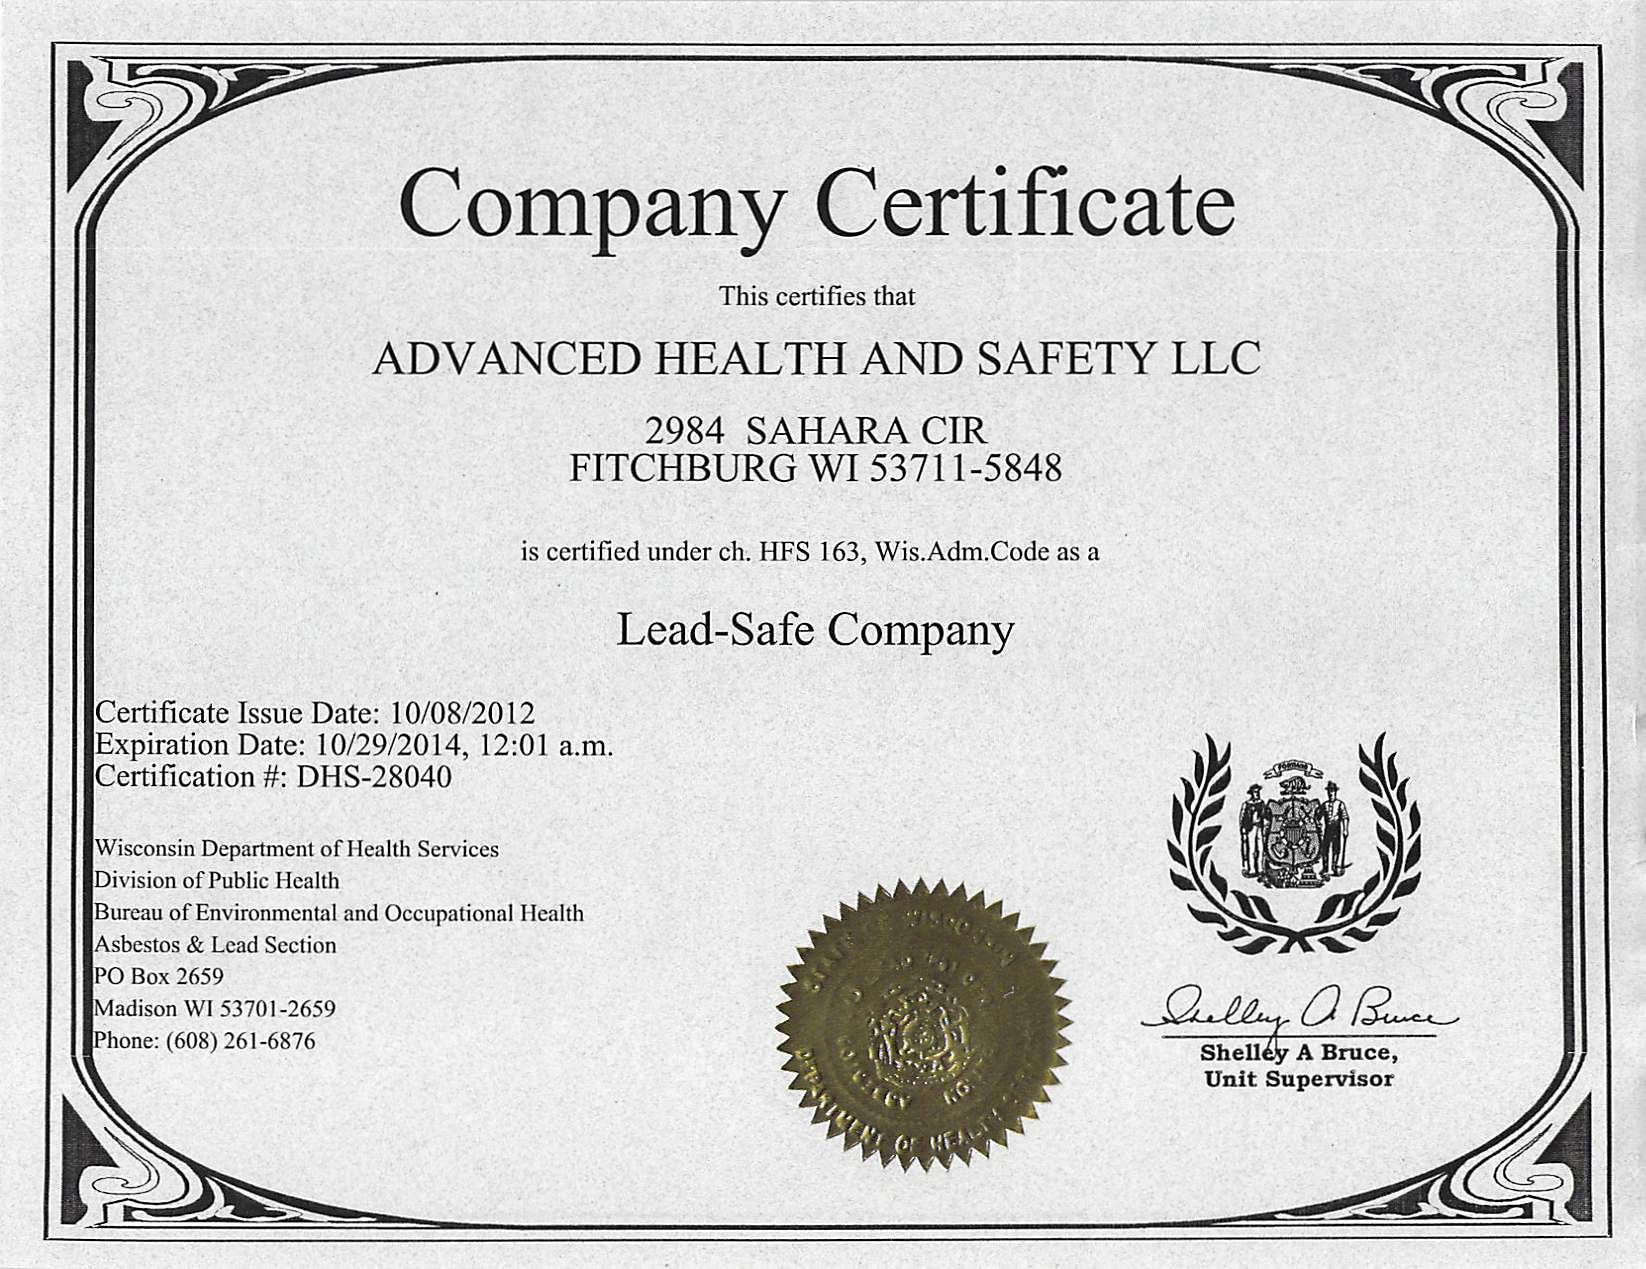 Licenses certifications advanced health and safety lead safe company nari membership insurance certificate asbestos company certification xflitez Images